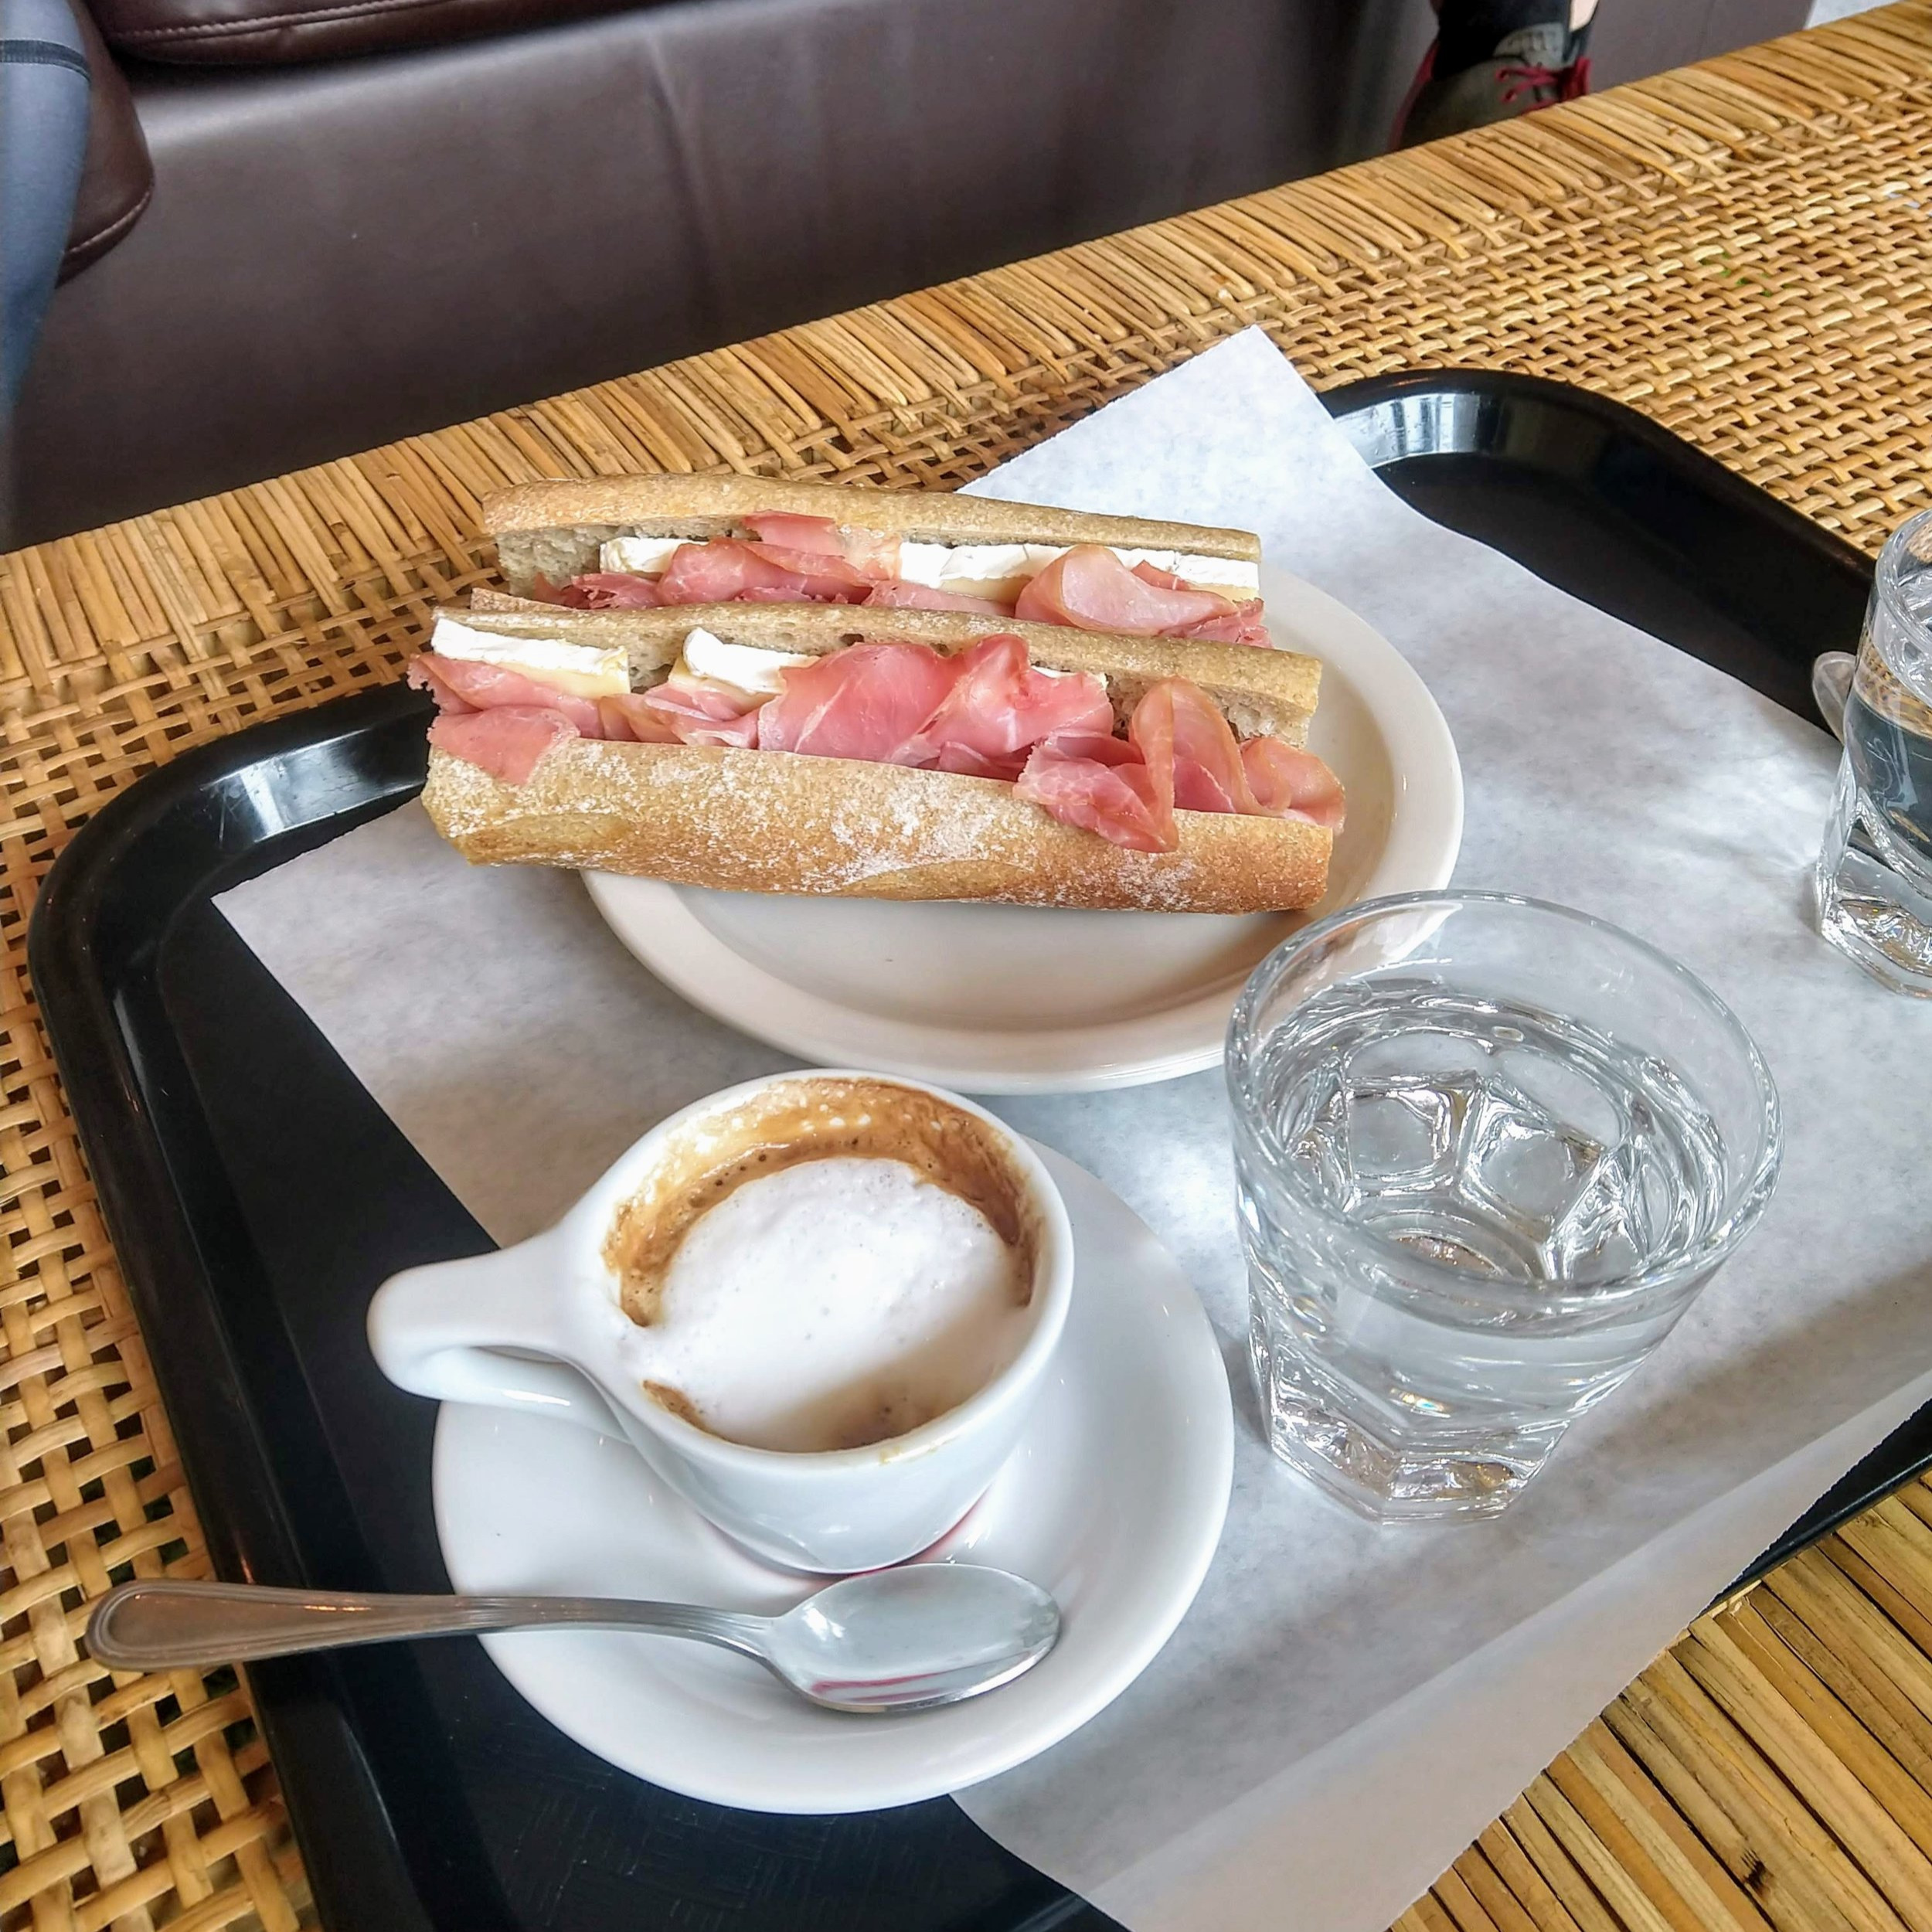 Hot cortado and baguette with ham and brie.